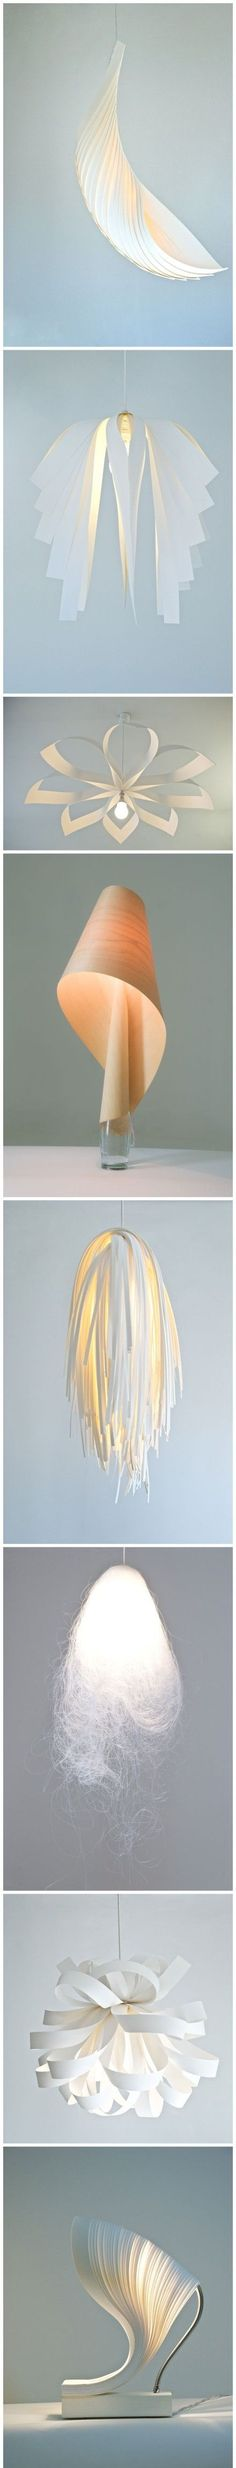 ♥ Amazed by the beauty of these limited edition paper lamp, designed by 7gods